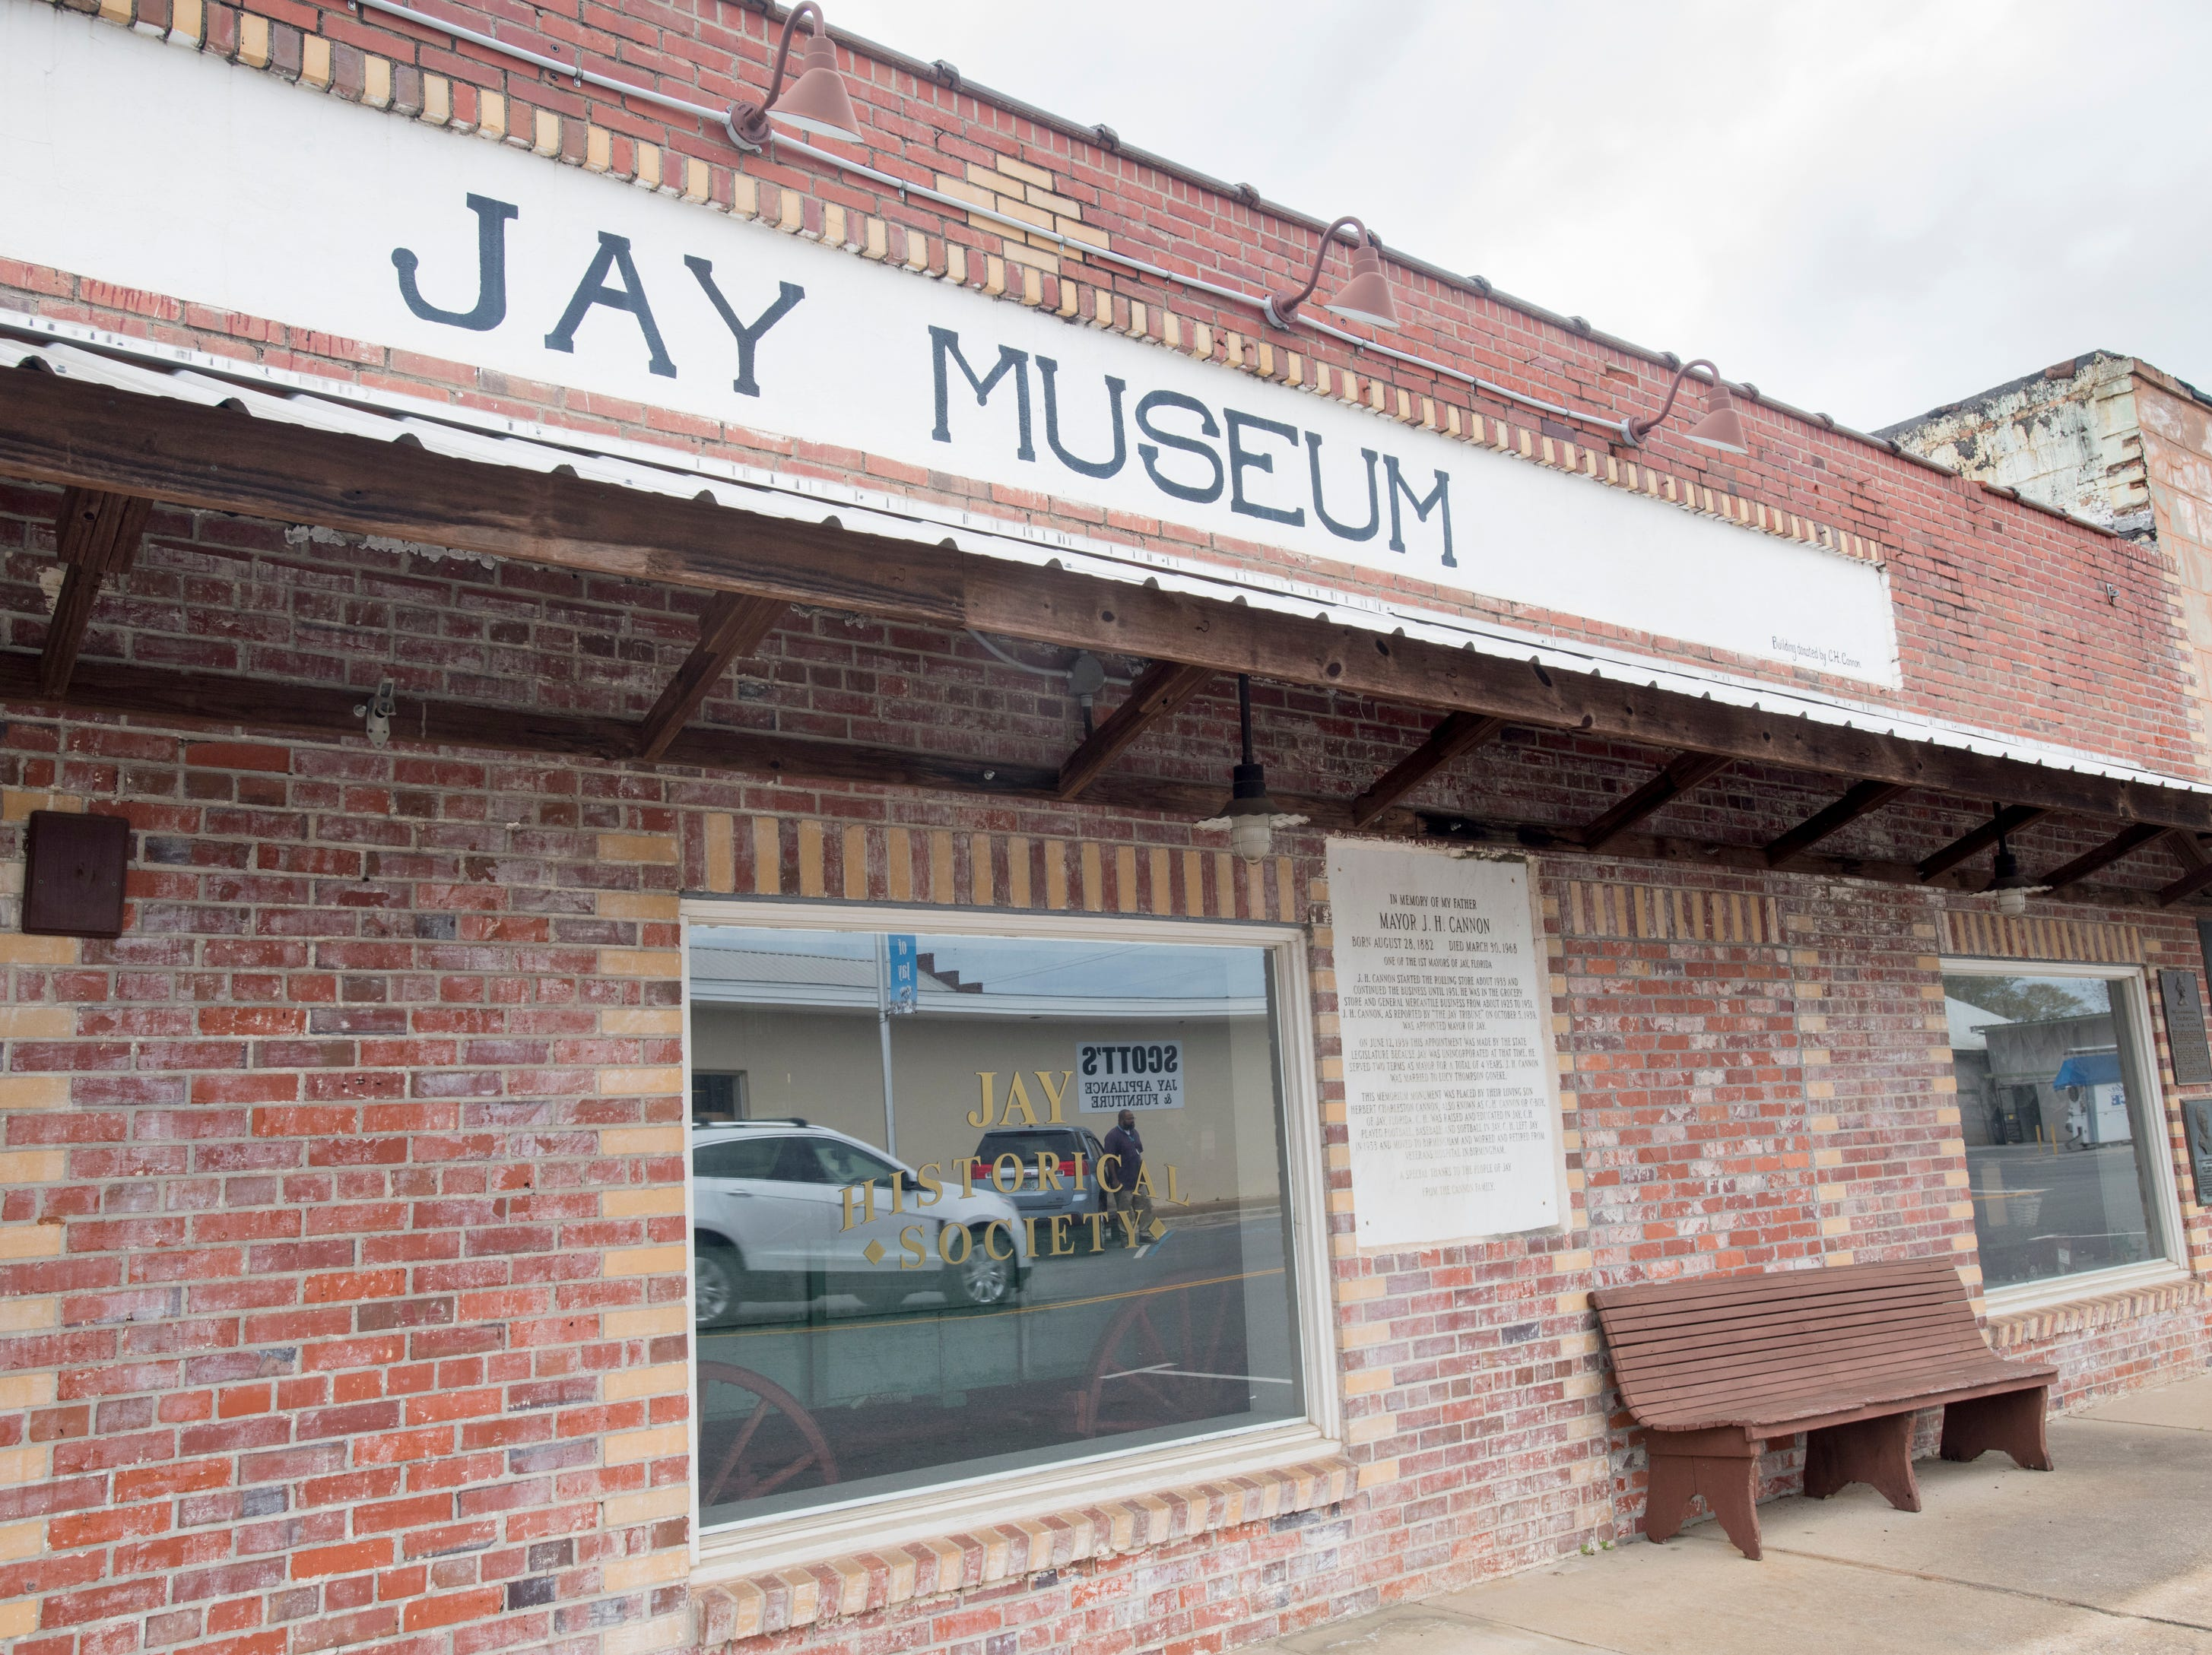 Museum in Jay, Florida on Wednesday, March 13, 2019.  A 2.7  magnitude earthquake was registered in Jay on March 6th.